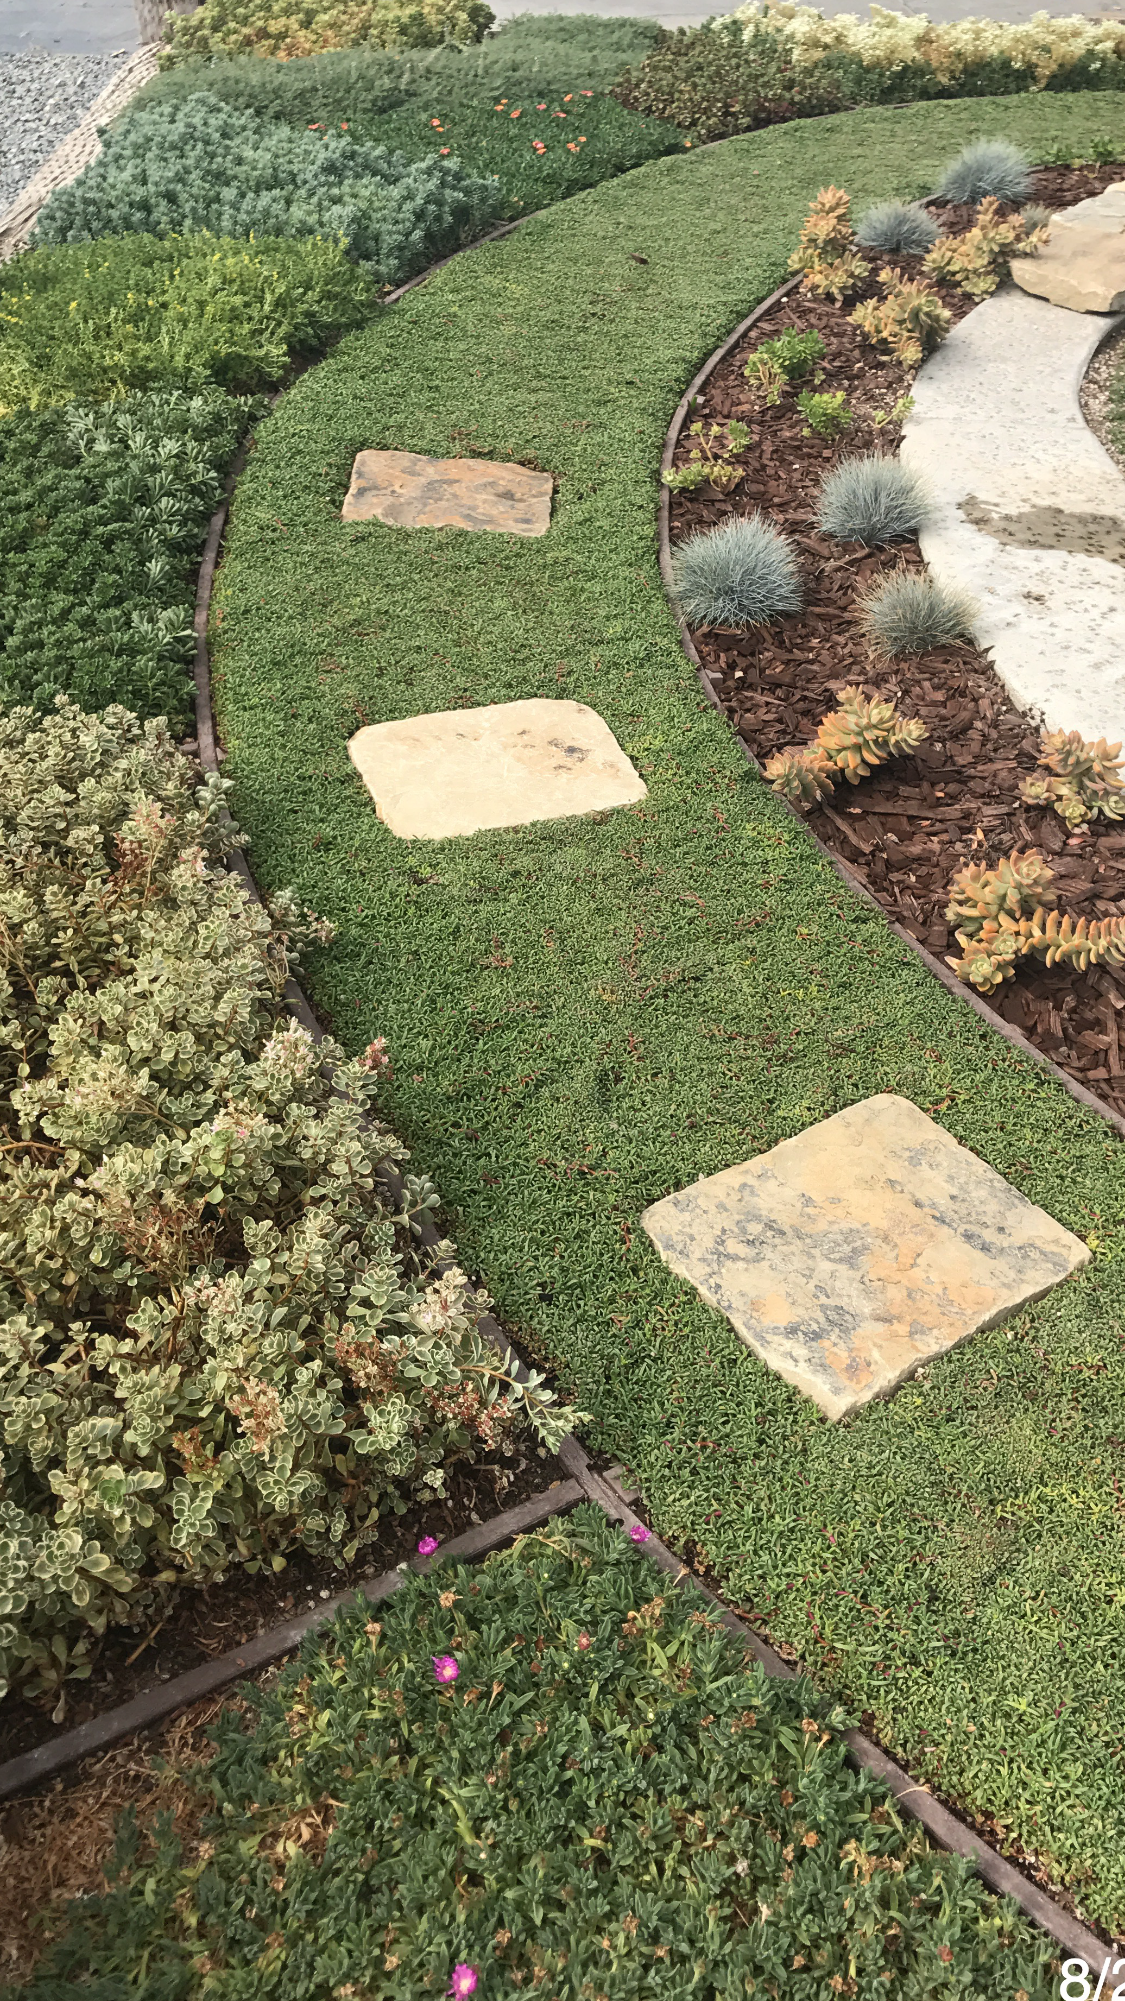 Dwarf Carpet Of Stars A Great Lawn Substitute Grown By Water Wise Landscaping Lawn Alternatives Native Plant Landscape